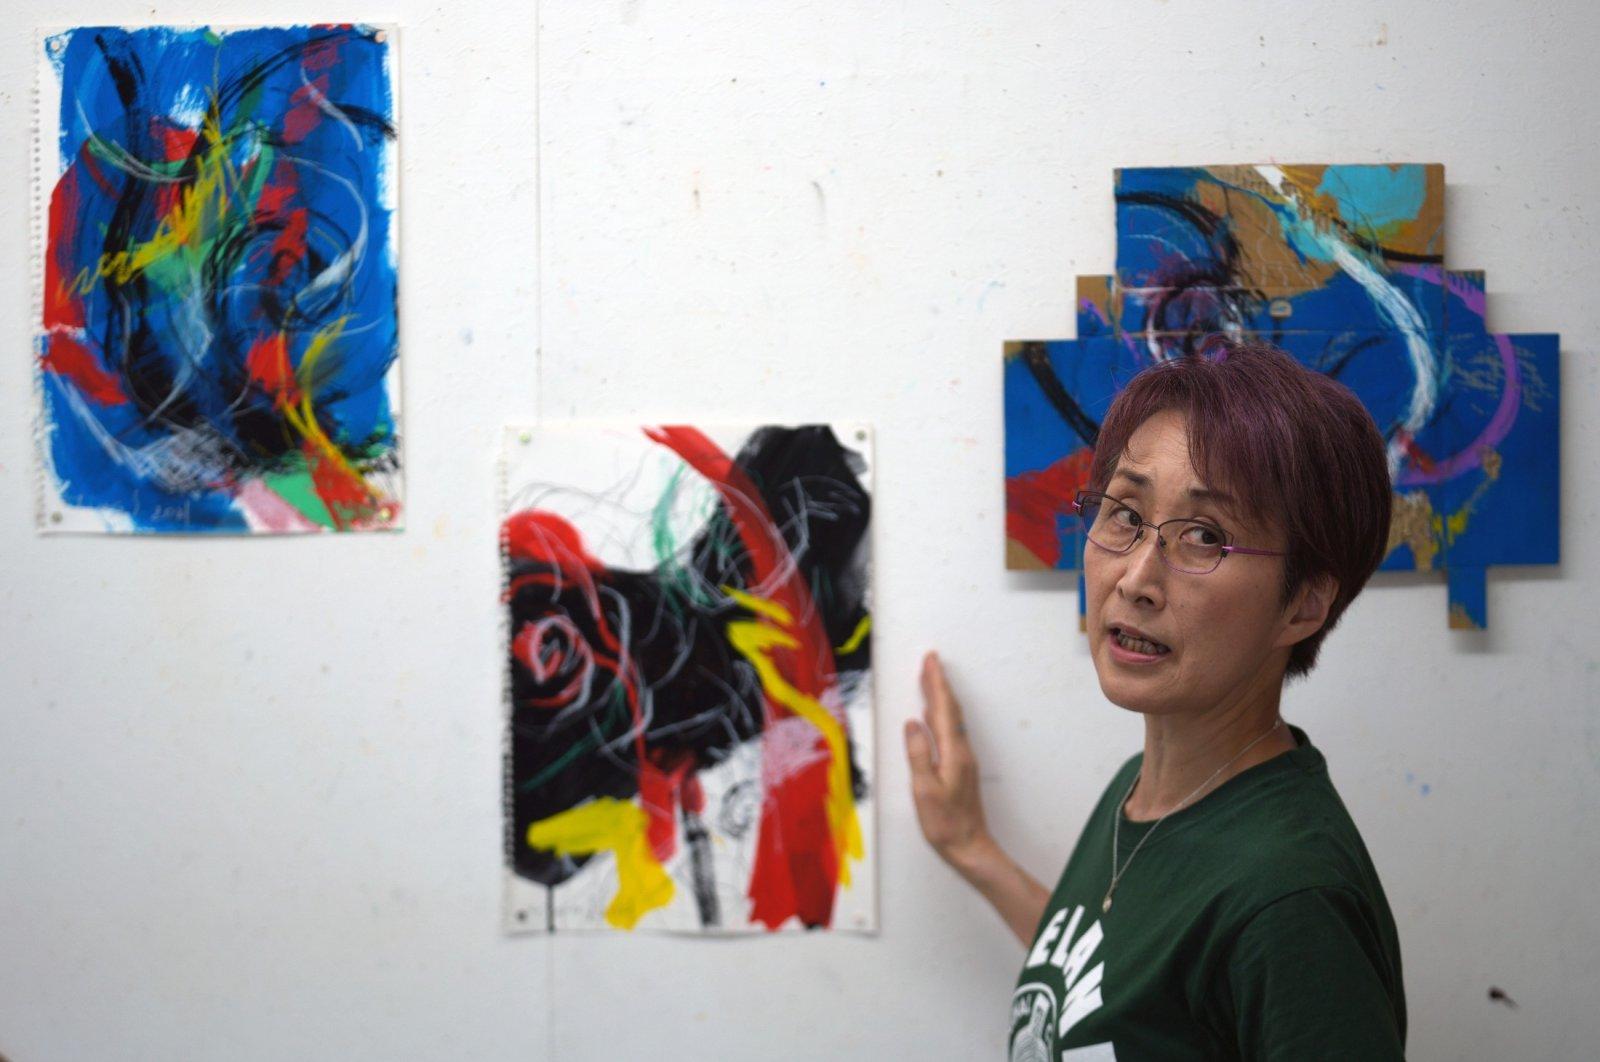 """Japanese artist Miwako Sakauchi speaks about her artwork for the art exhibition """"Declaration of the end of Olympic games"""" in Chiba near Tokyo, Japan, June 10, 2021. (AP Photo)"""